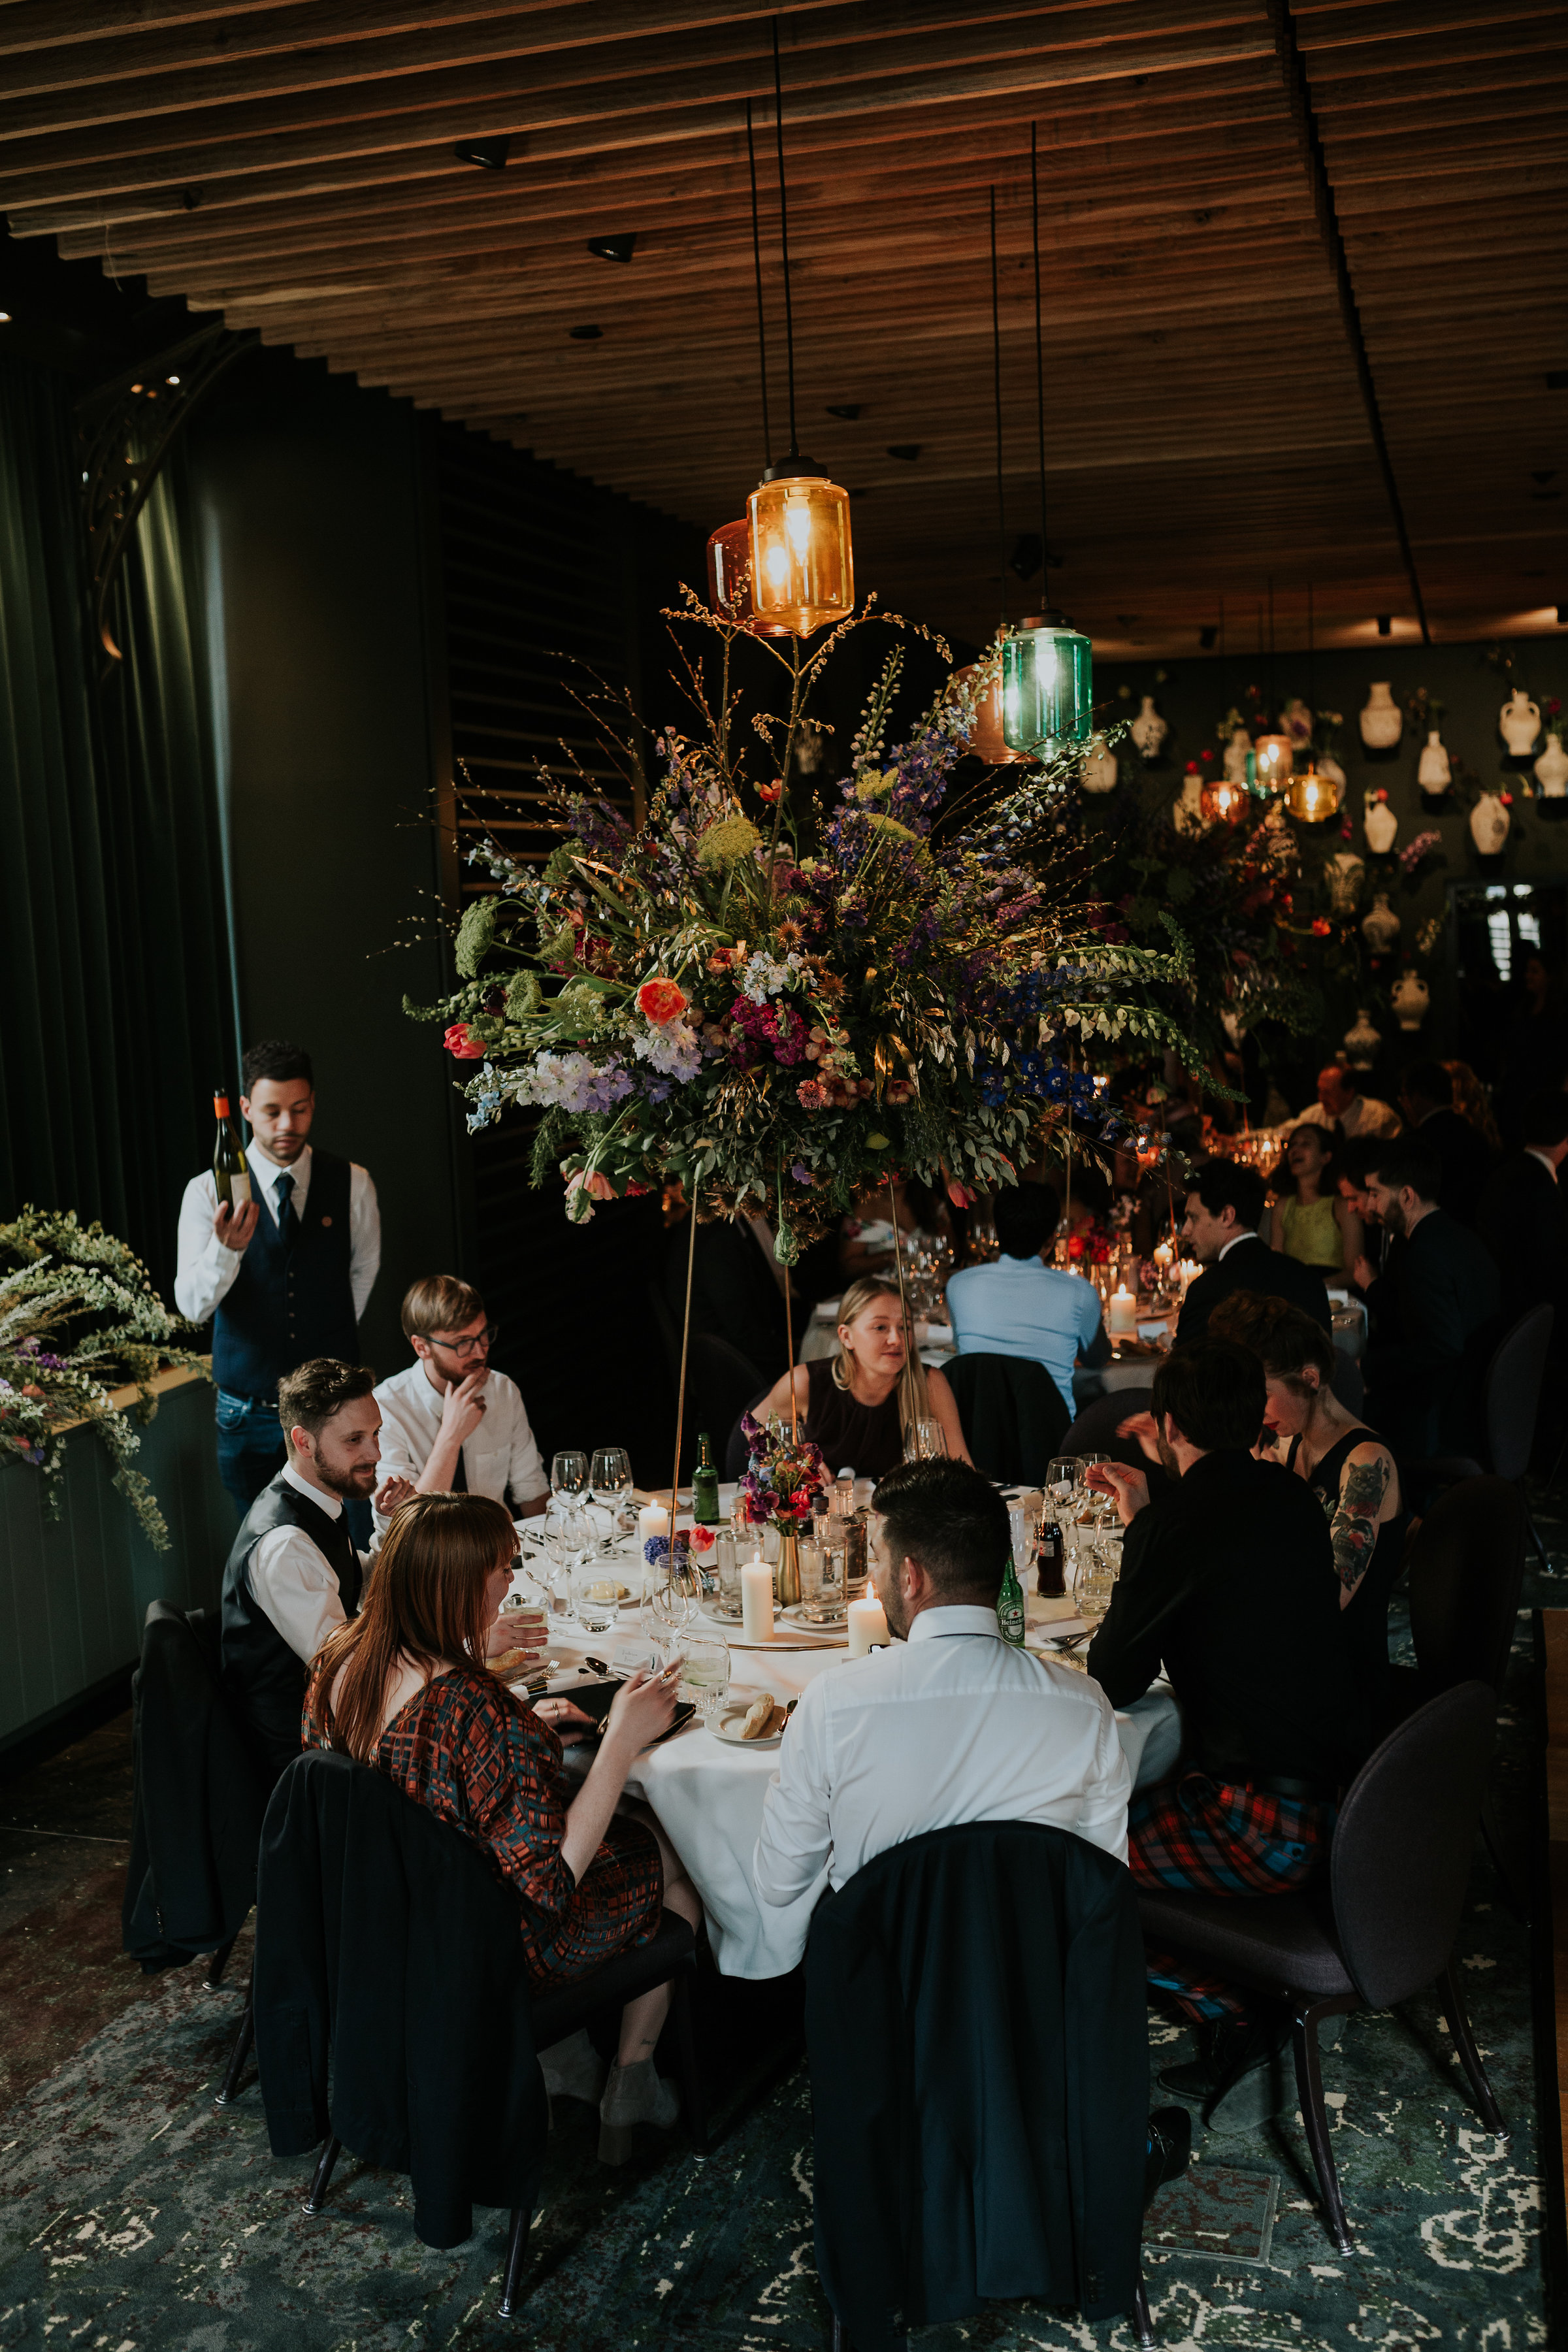 A.P Bloem florist wedding receptie reception bloemist evenement bloemen amsterdam luxury golden age guirlande garland florals pulitzer wedding bruiloft trouwen marriage styling table decoration liefde peonies poppies papaver goudeneeuw stilllife dutch